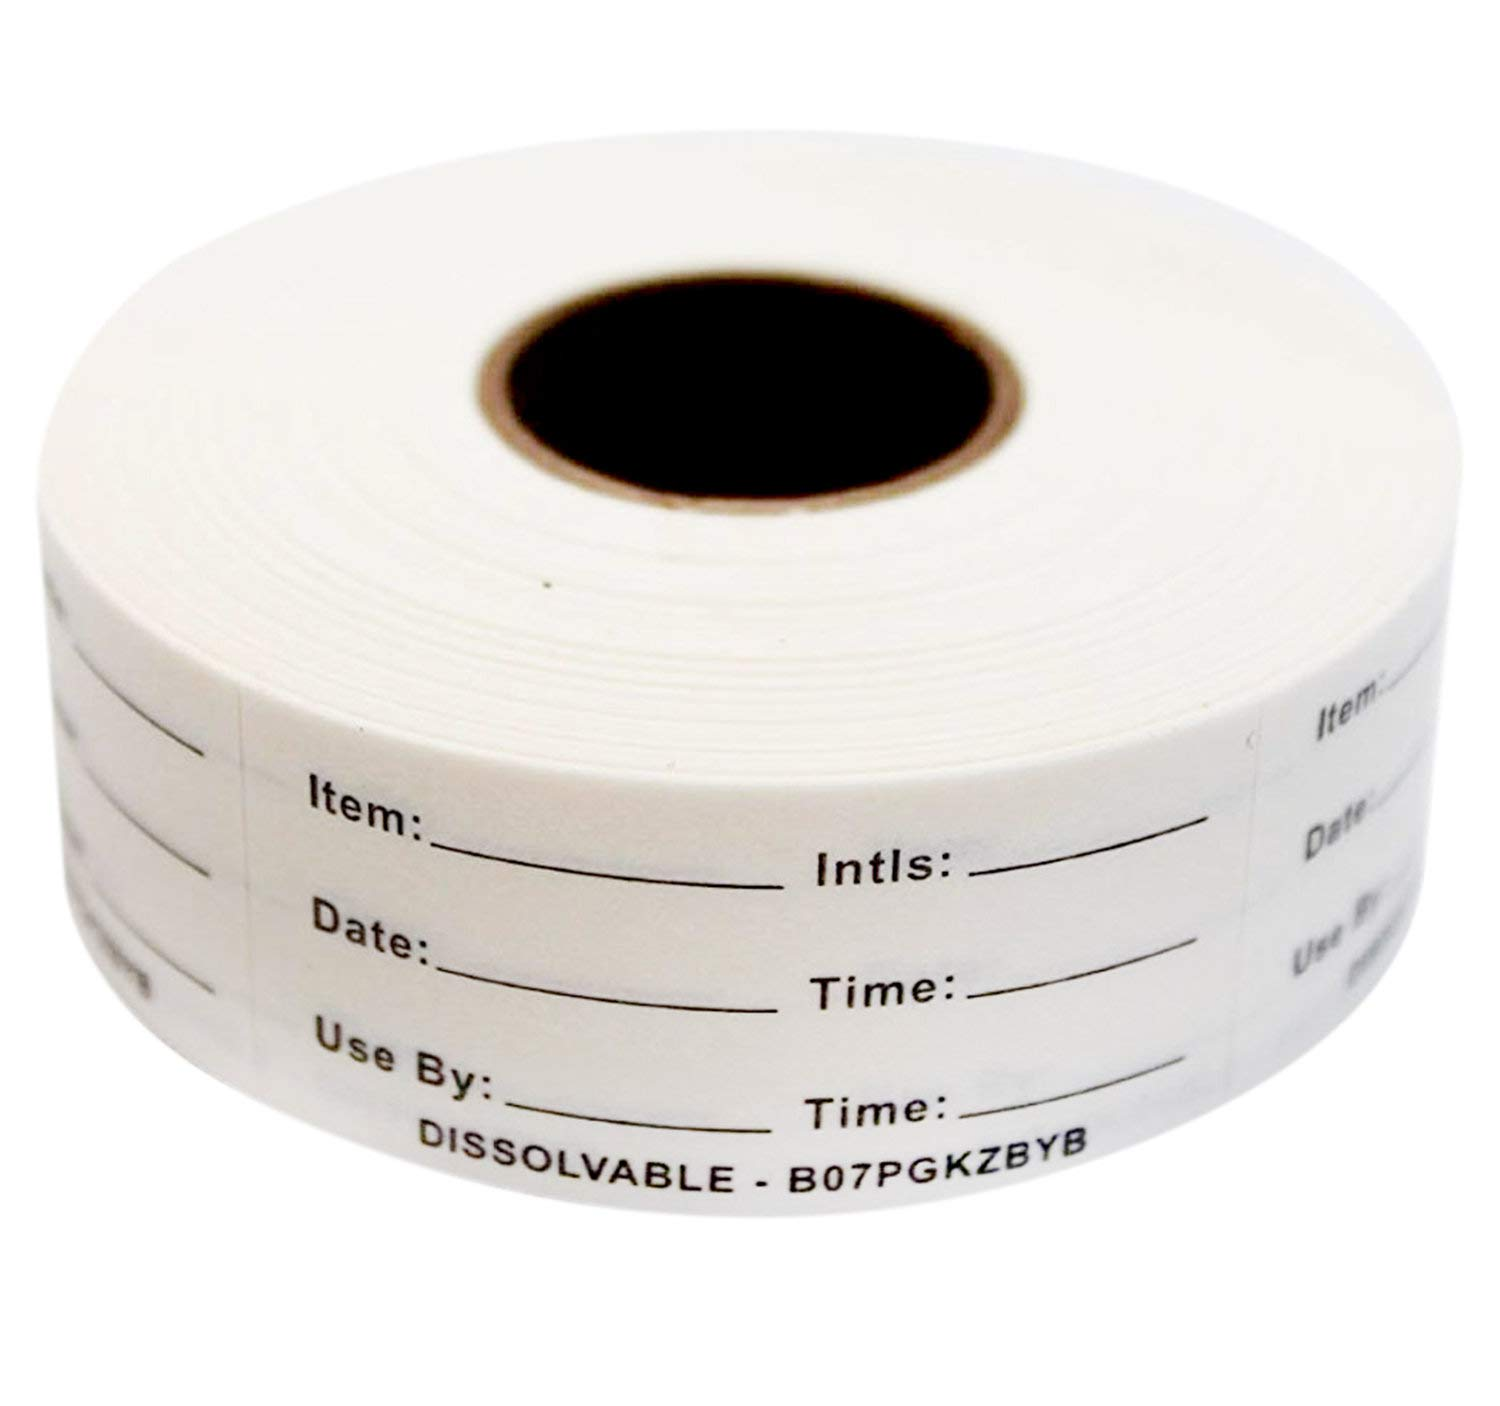 Dissolvable Food Labels for Home or Restaurant Perfect for Glass, Metal, Plastic Reusable Containers 500 Labels per roll 1x2 inch Dissolves in Water in 30 sec Leaves no Adhesive Residue. Made in USA